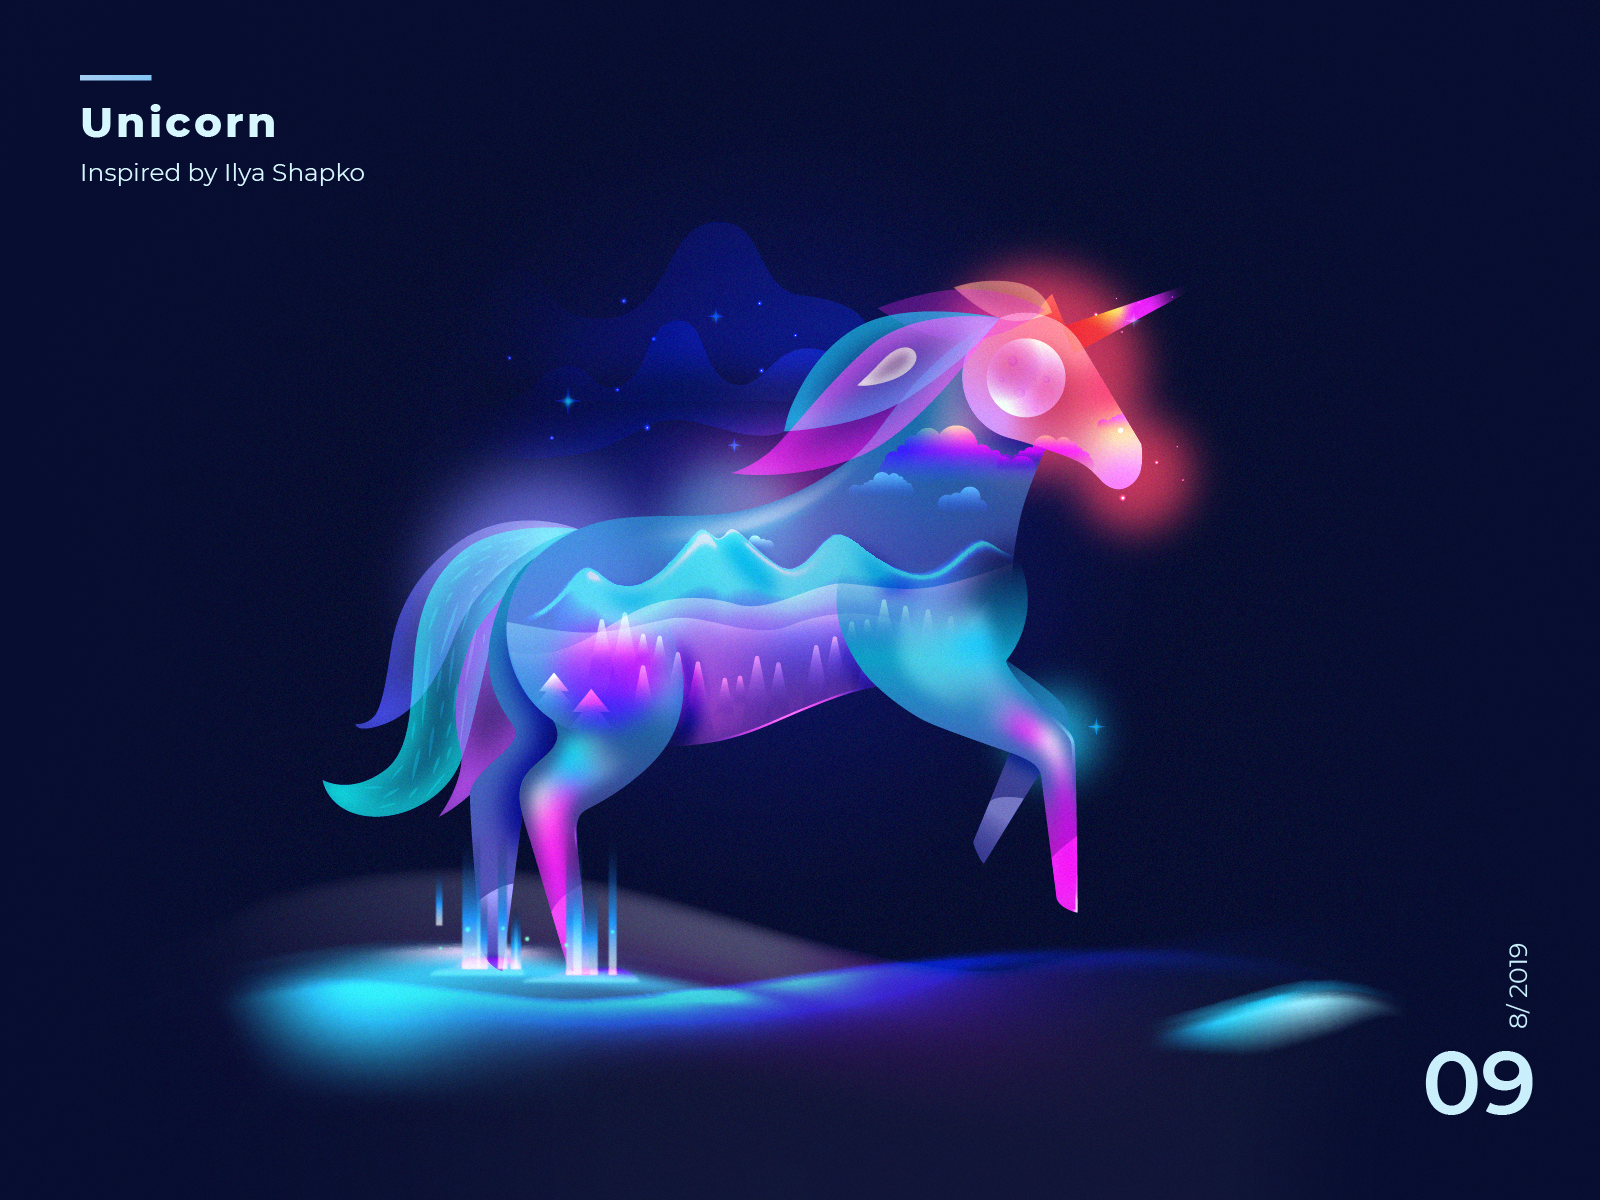 Unicorn Fantasy Light fantasyart unicornvision dark mode light fantasy unicorn